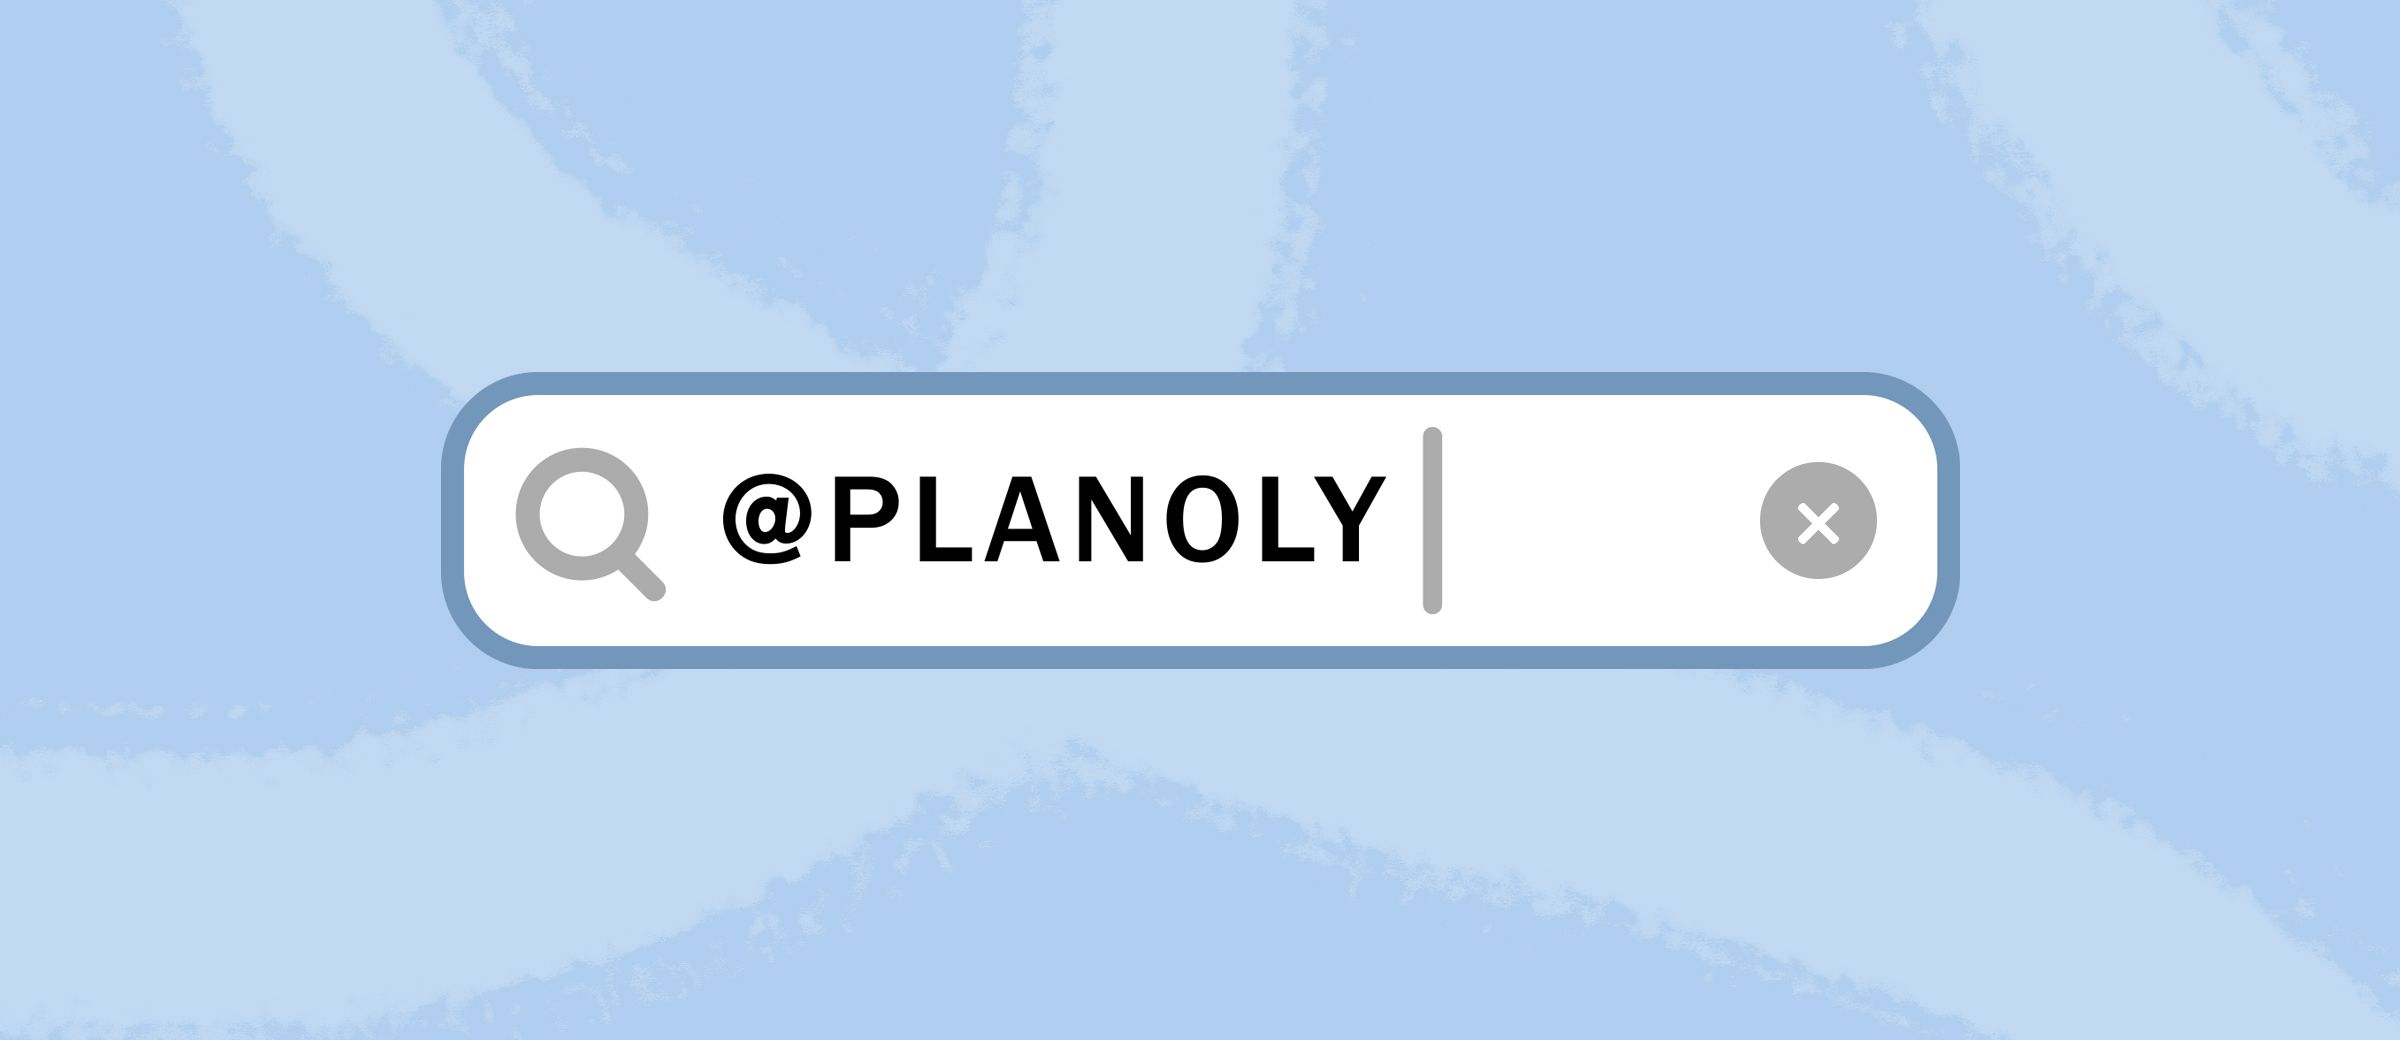 PLANOLY-Blog Post-Instagram Search Feature-Banner